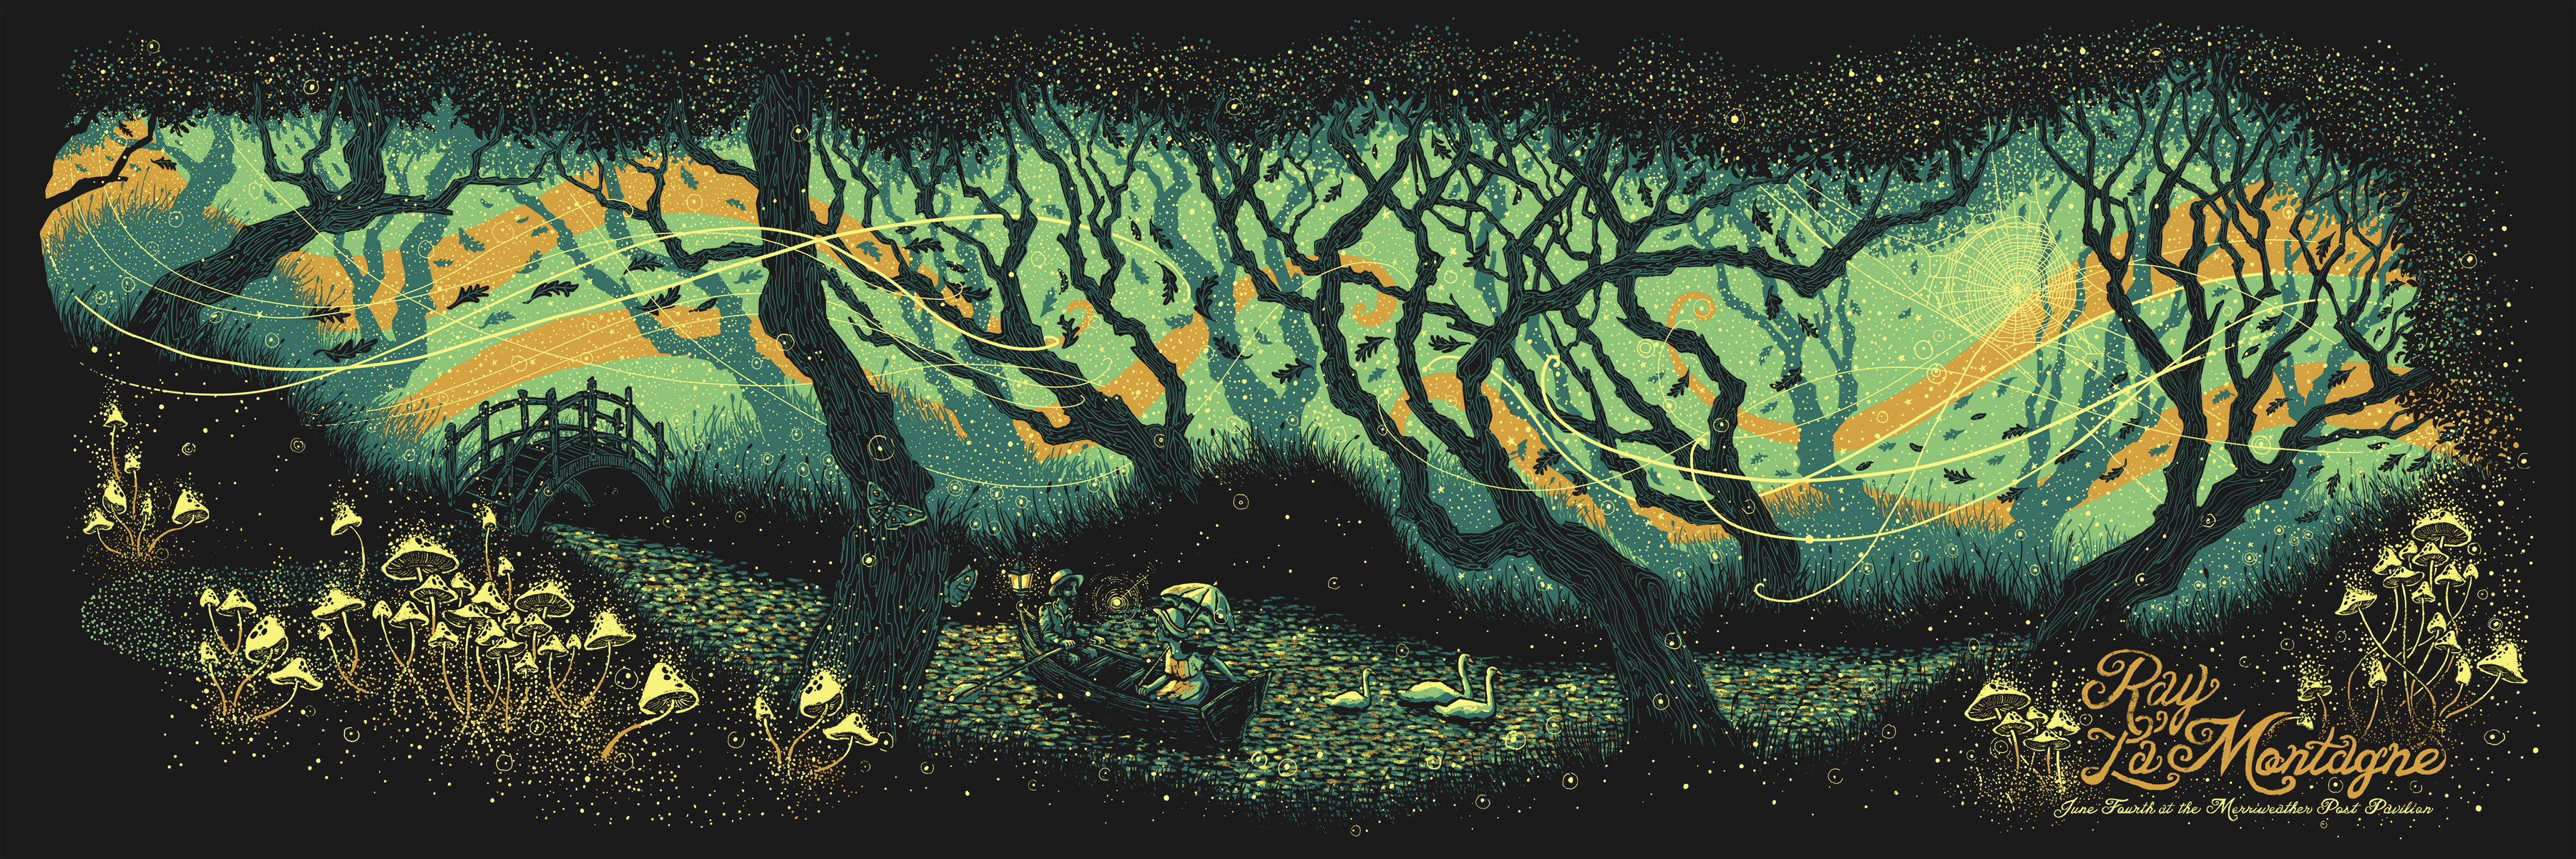 """Ray LaMontagne - Baltimore, MD 2014"" by James R Eads.  12"" x 36"" Screenprint.  Ed of 195 S/N.  $45"